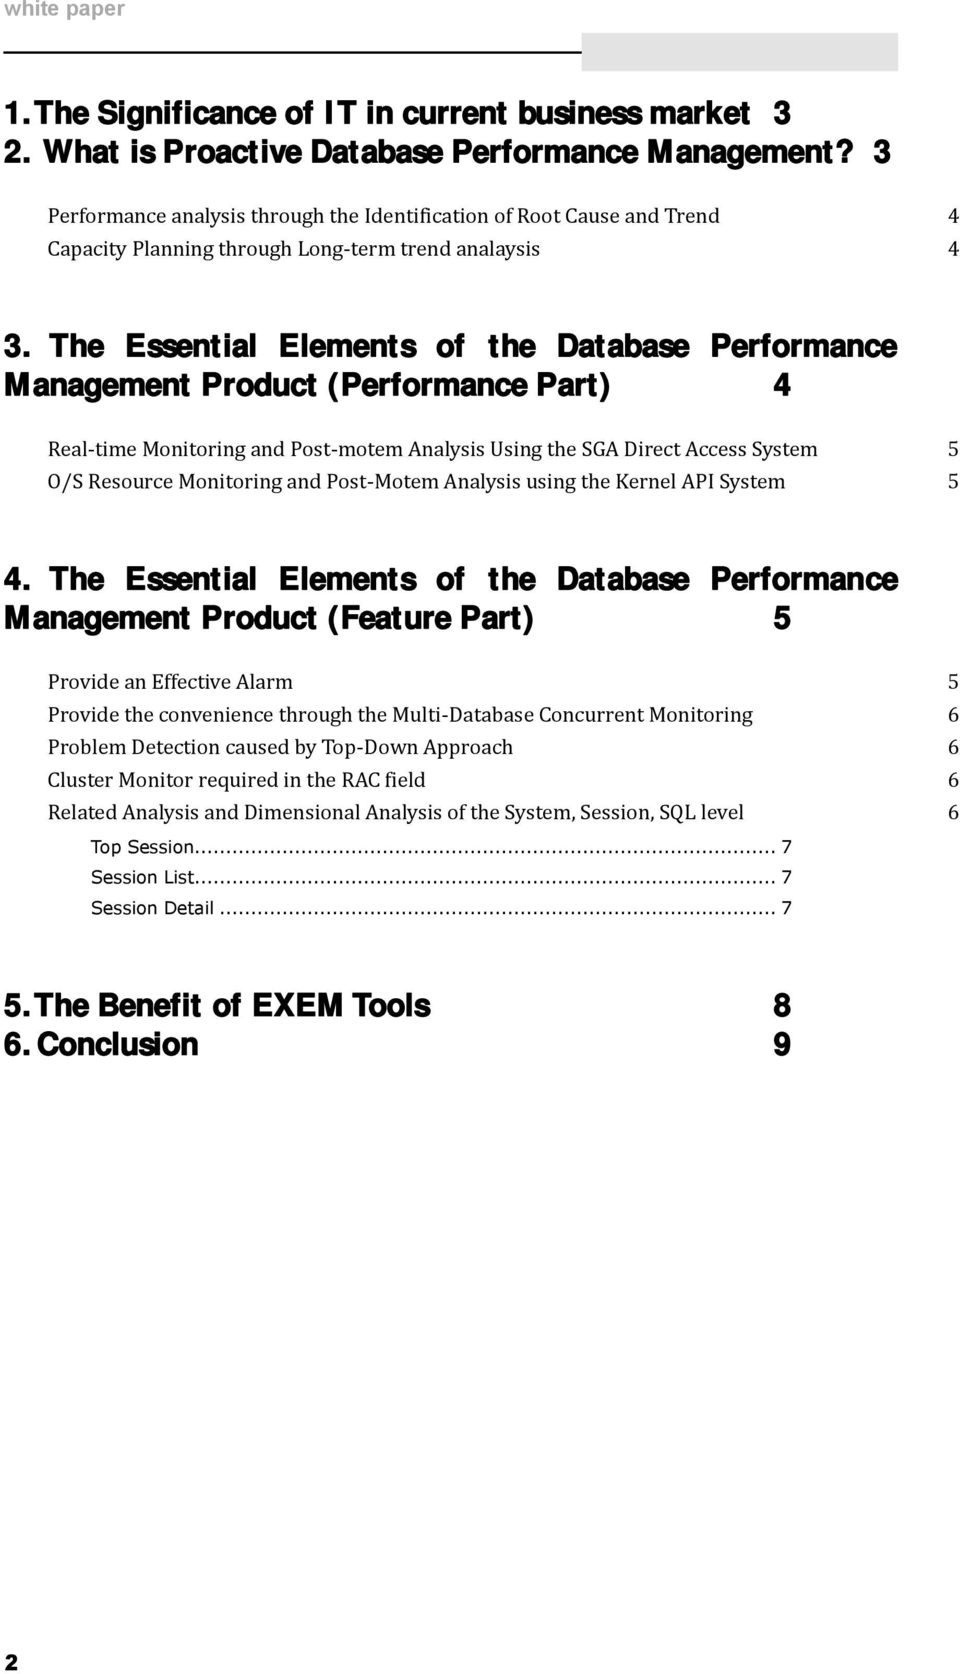 The Essential Elements of the Database Performance Management Product (Performance Part) 4 Real-time Monitoring and Post-motem Analysis Using the SGA Direct Access System 5 O/S Resource Monitoring